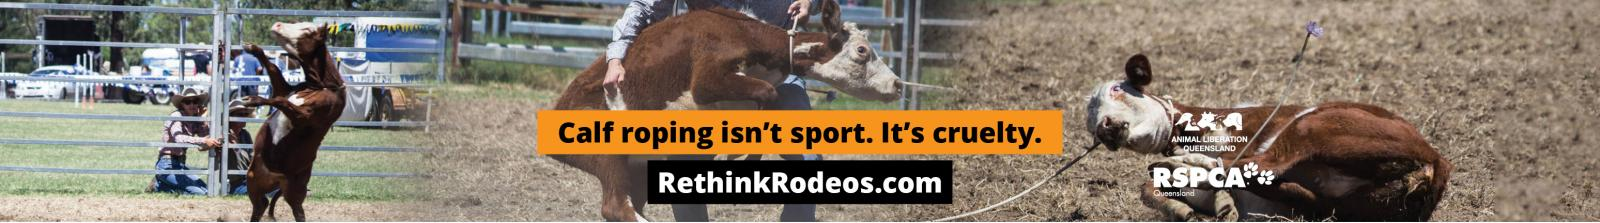 Calf roping billboard 2